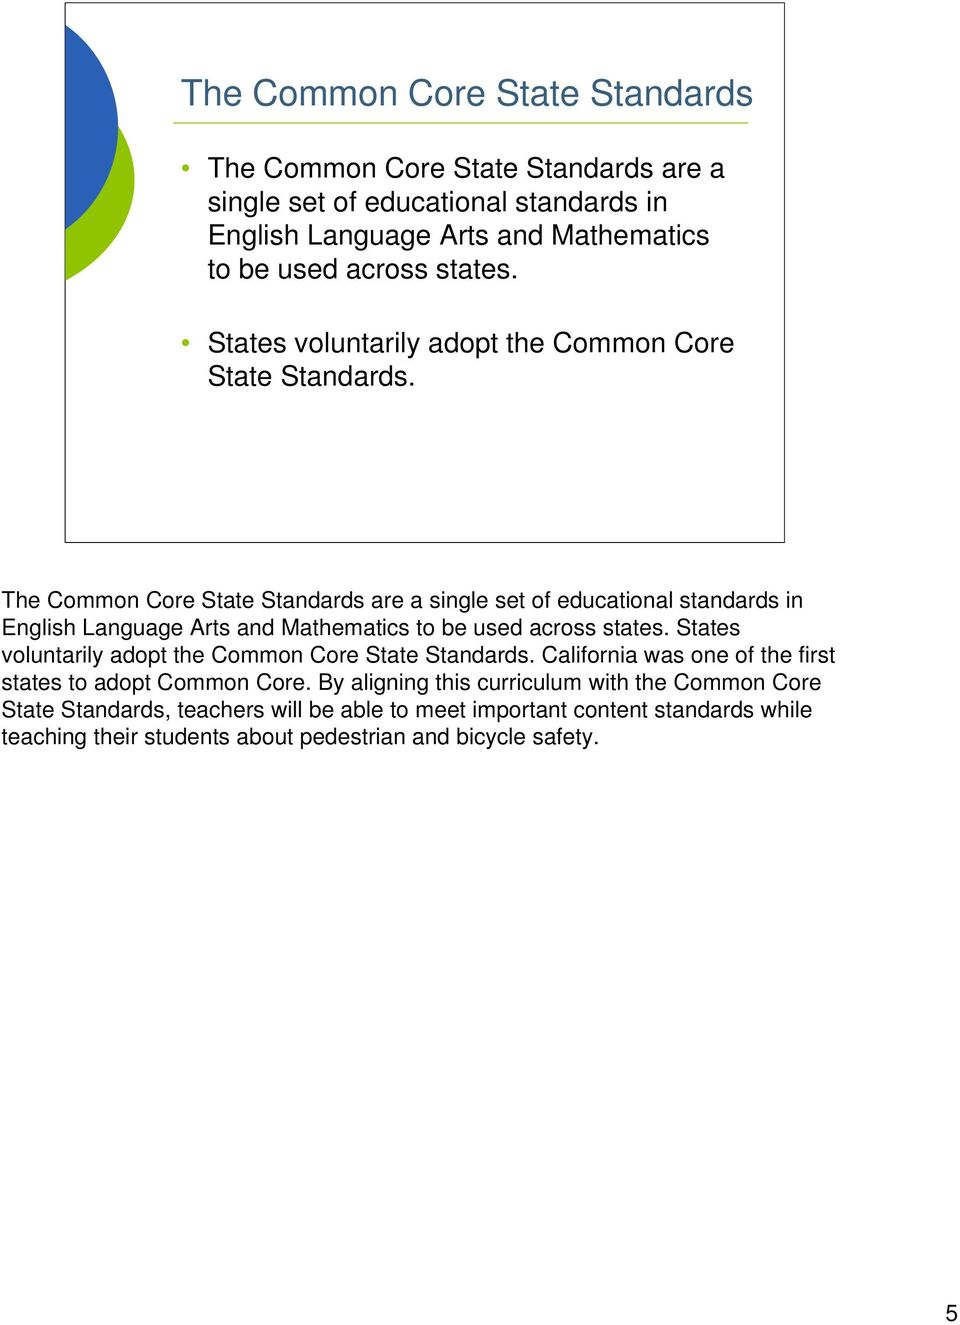 The Common Core State Standards are a single set of educational standards in English Language Arts and Mathematics to be used across  California was one of the first